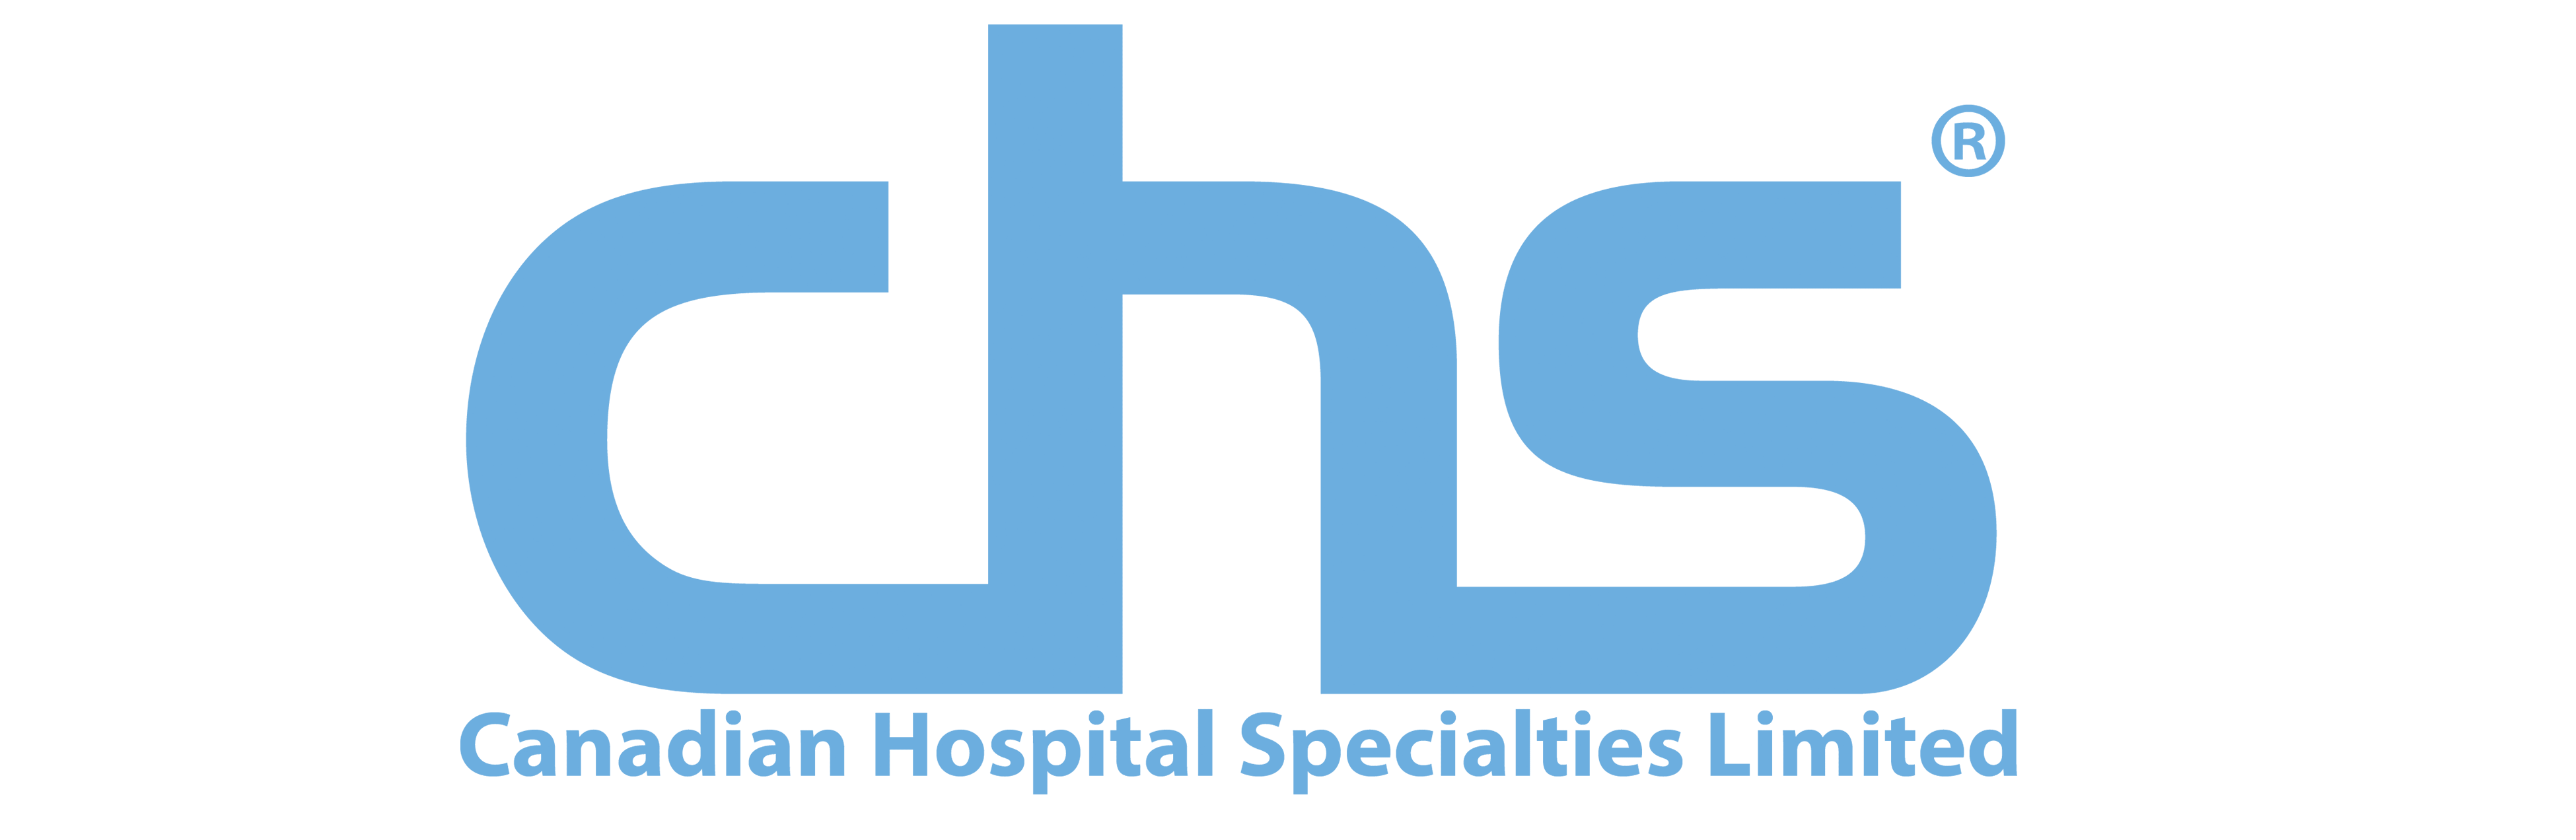 Canadian Hospital Specialties Limited logo